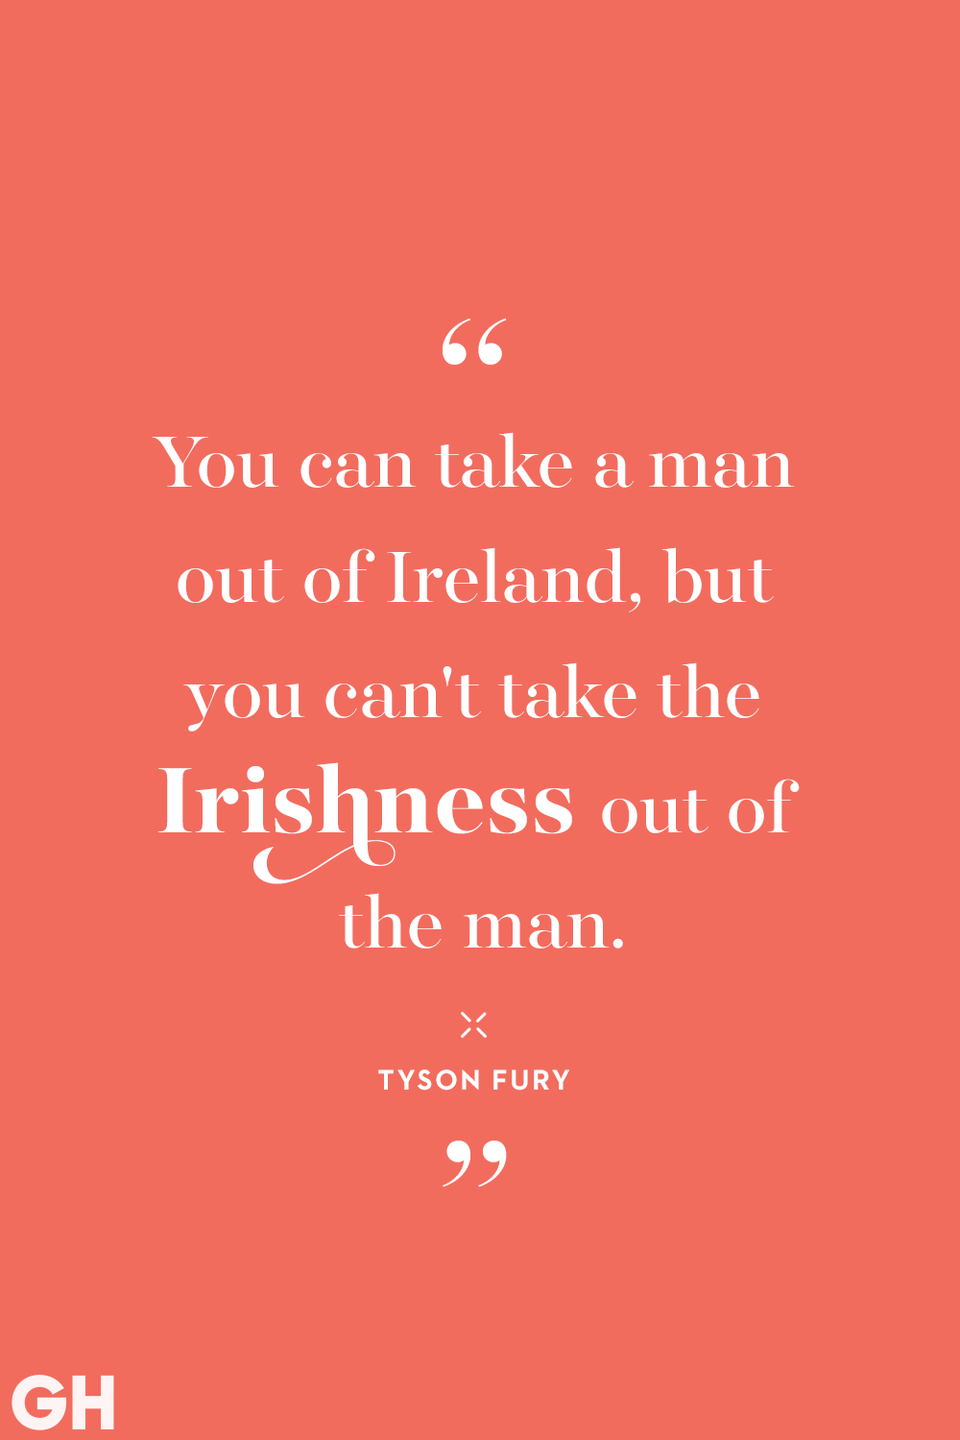 "<p>""You can take a man of Ireland, but you can't take out the Irishness of the man."" </p>"